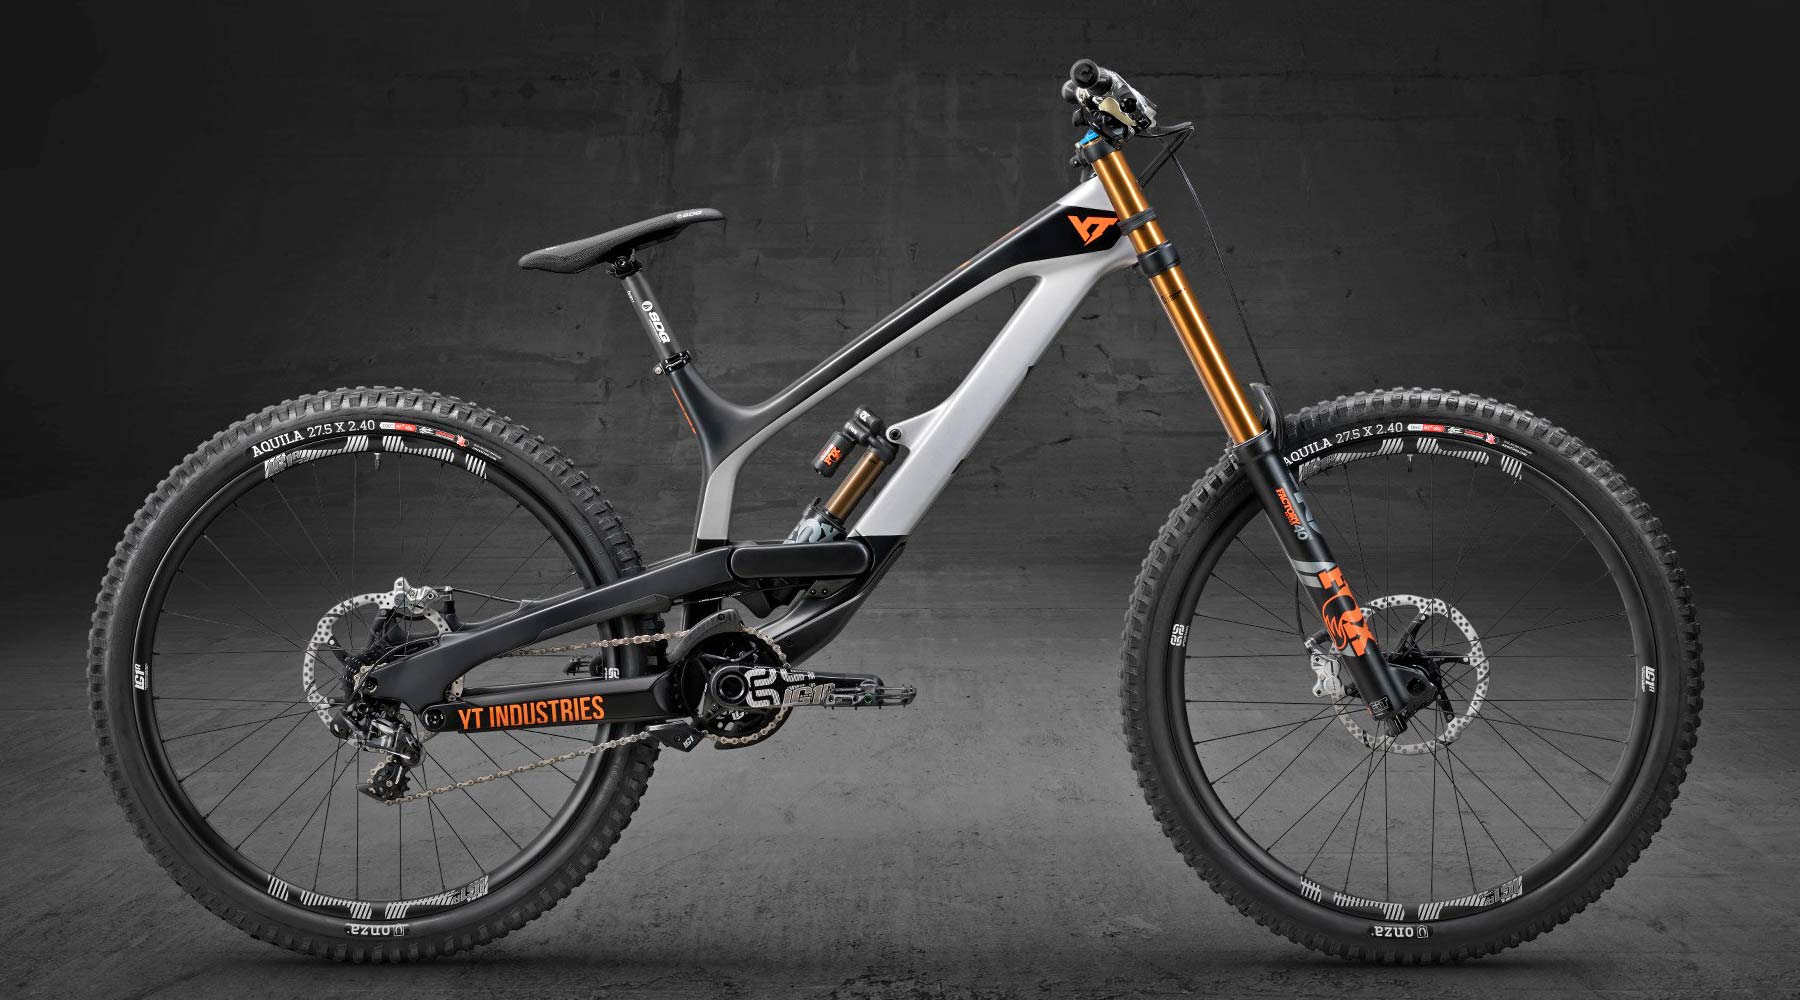 Yt Reups Aaron Gwin S World Cup Winning Carbon Tues Dh